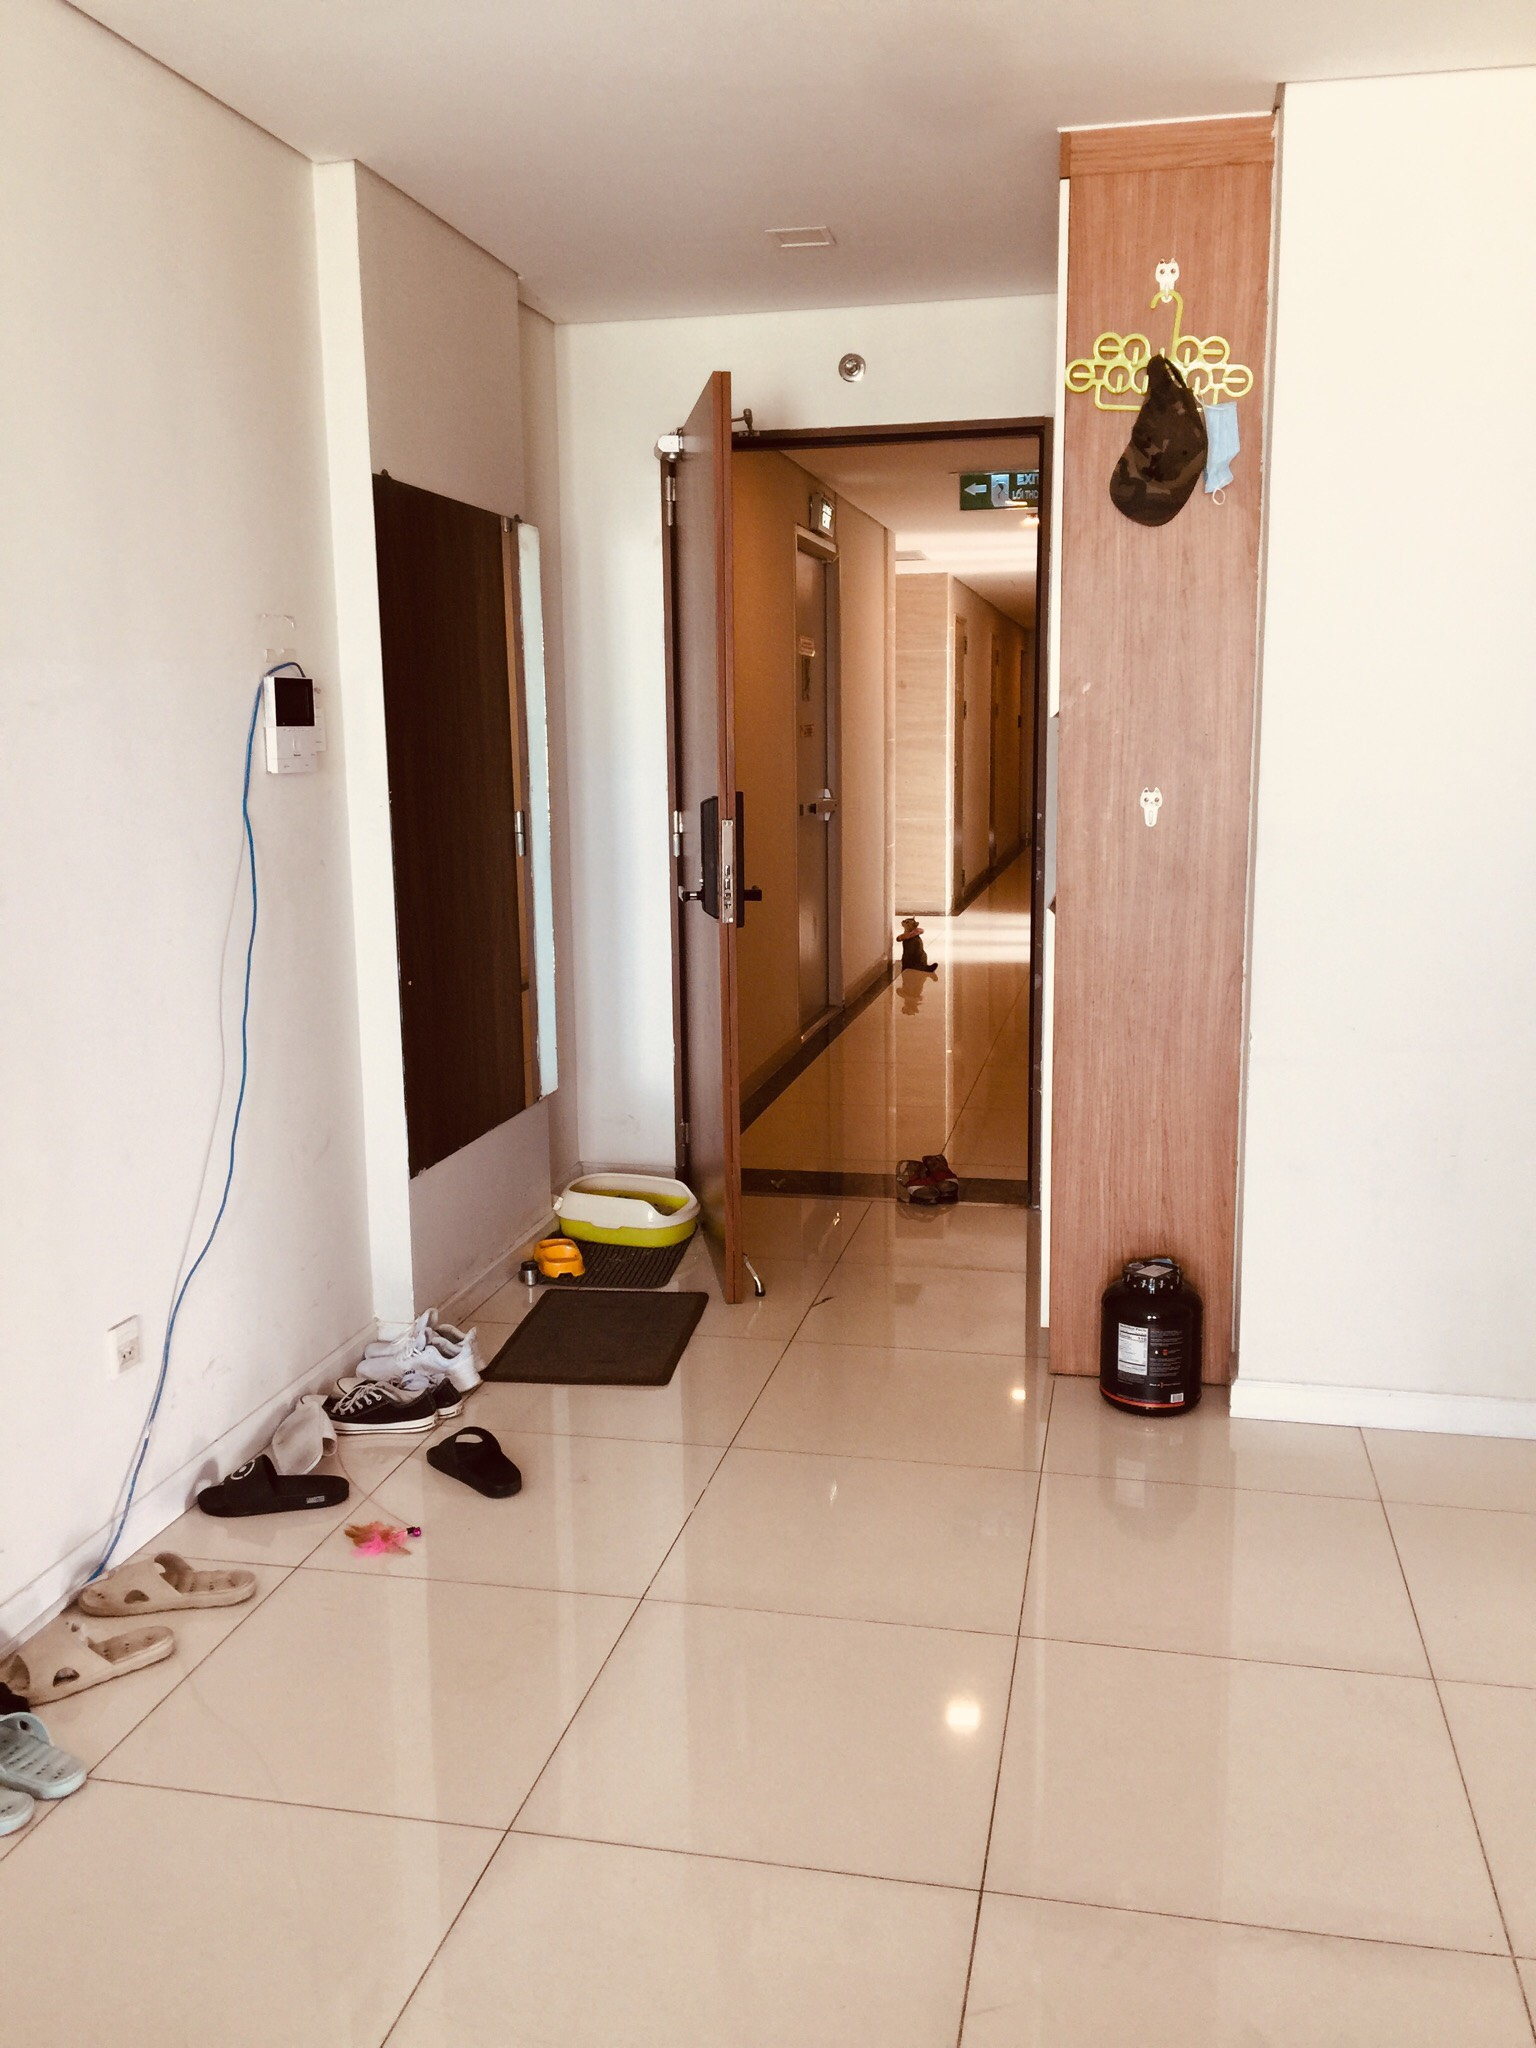 rent Rivera Park Sai Gon - 2 bedroom - 2 wc